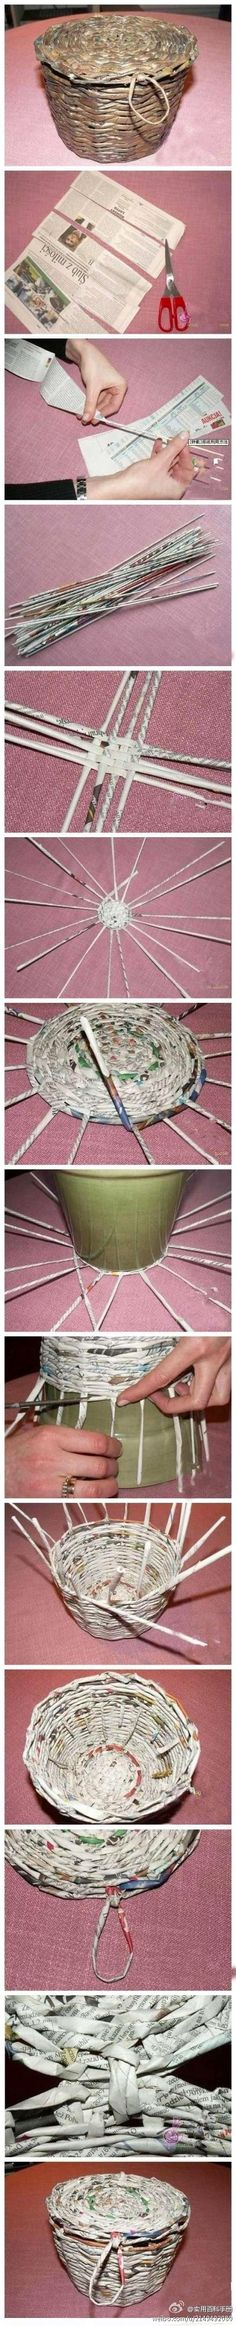 DIY Newspaper Basket DIY Newspaper Basket